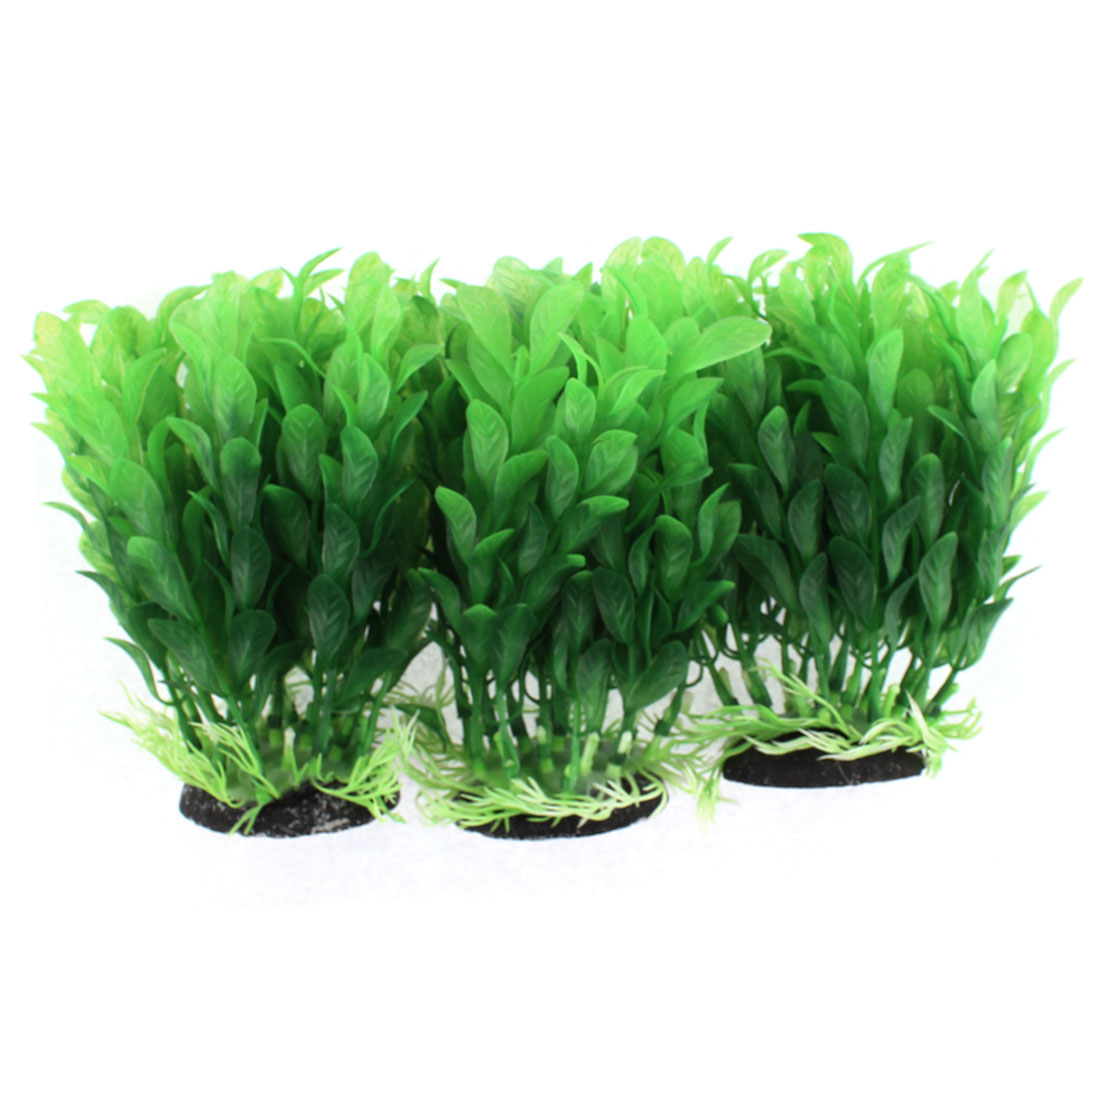 Aquarium Ceramic Base Plastic Simulated Water Plant Grass Ornament 3pcs